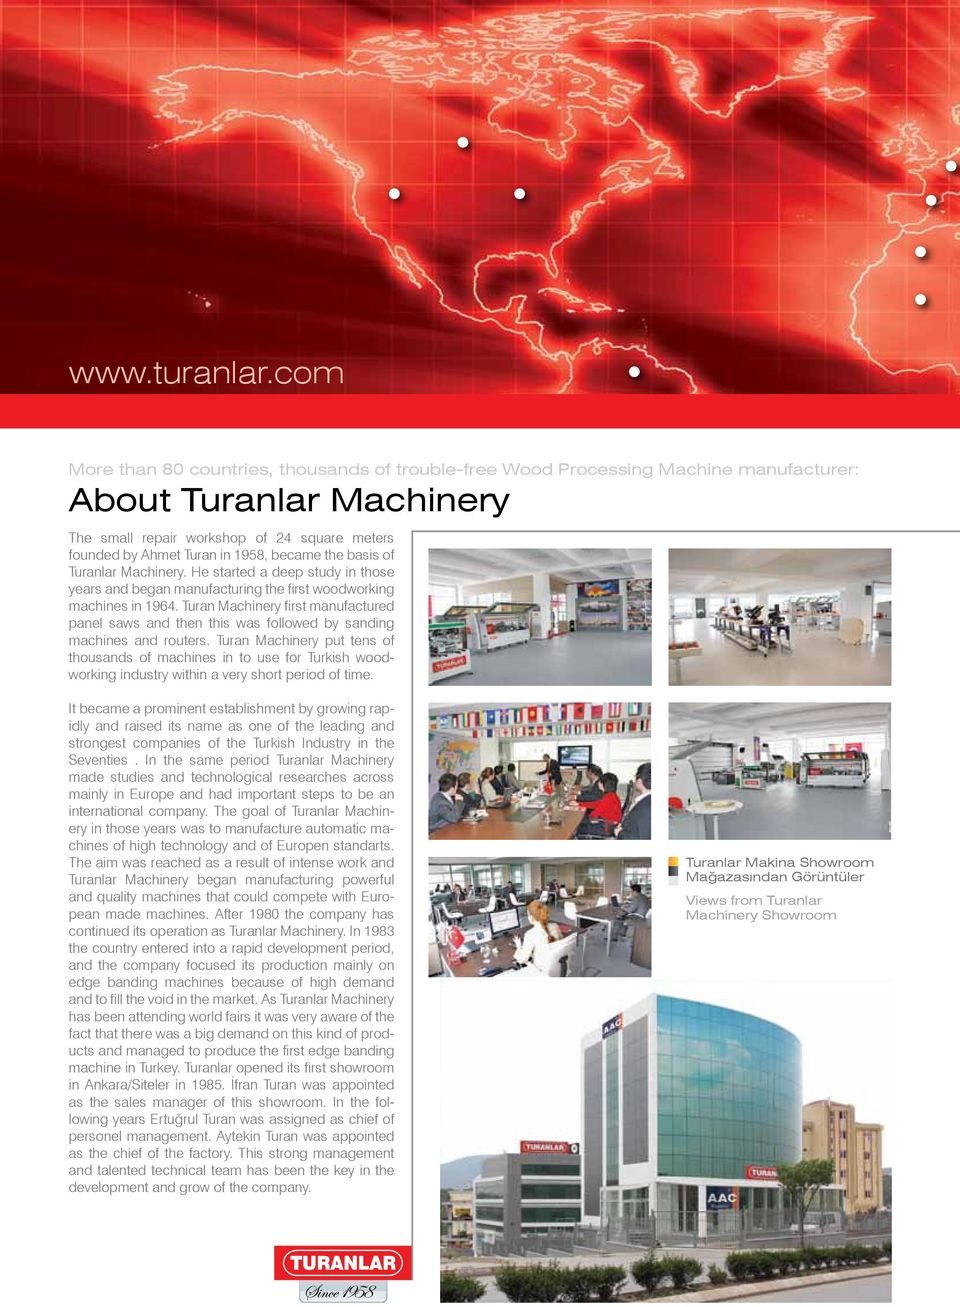 became the basis of Turanlar Machinery. He started a deep study in those years and began manufacturing the first woodworking machines in 1964.